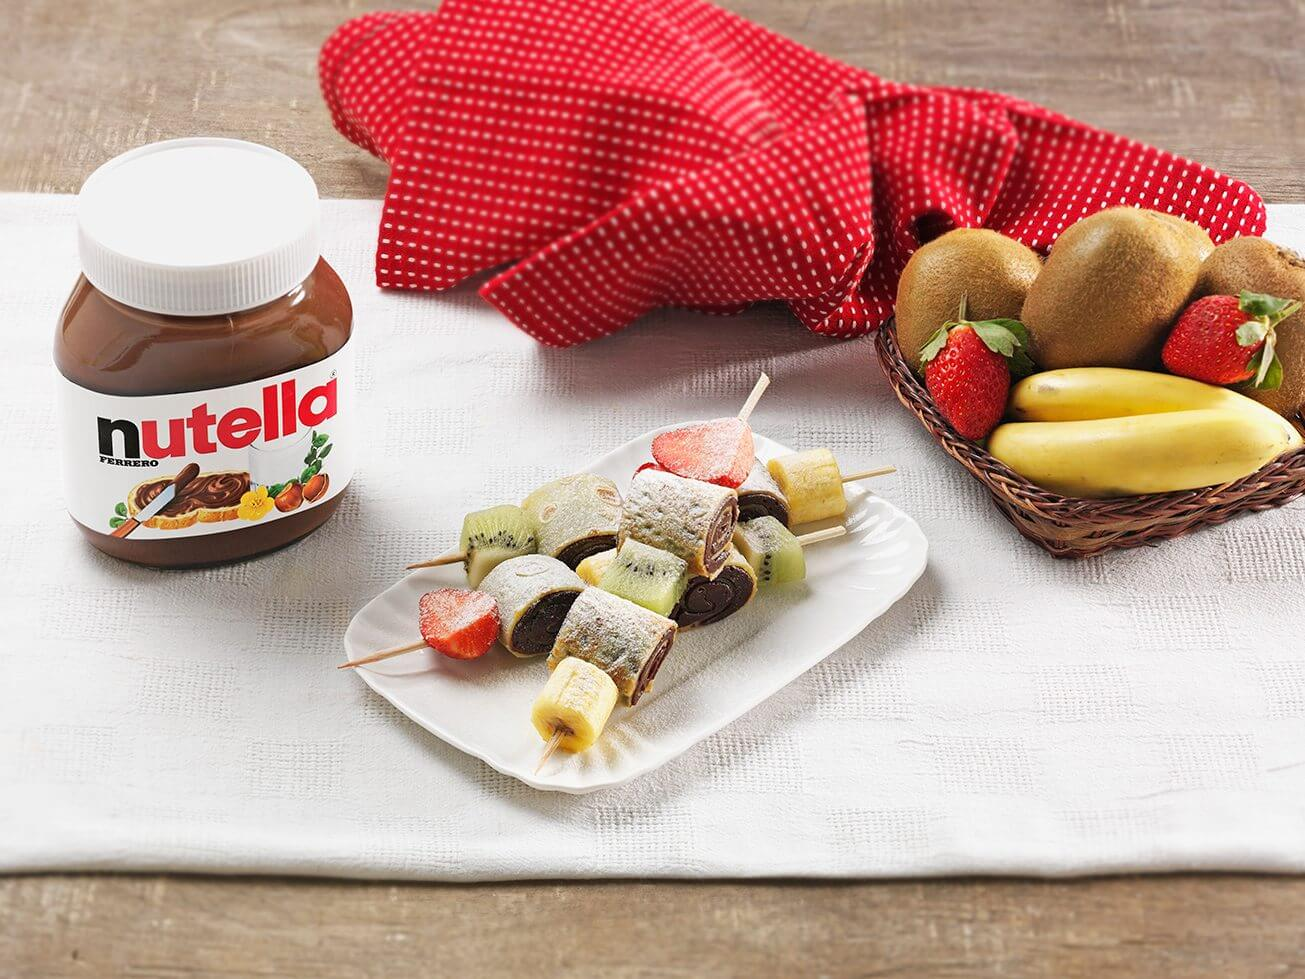 Nutella Ingredienti – Spiedini di Crepes con Nutella